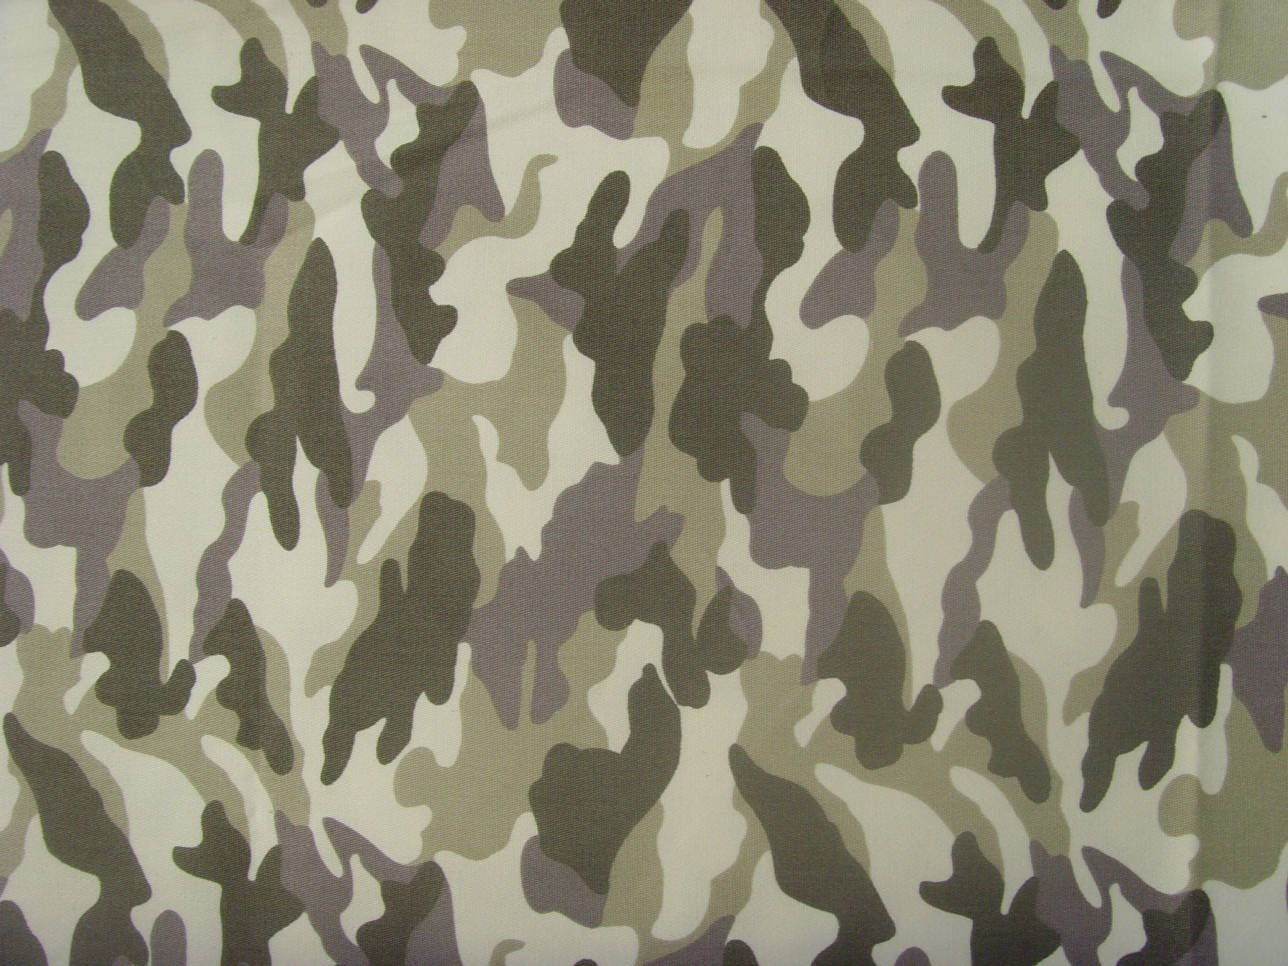 [47+] Military Camo Wallpaper on WallpaperSafari